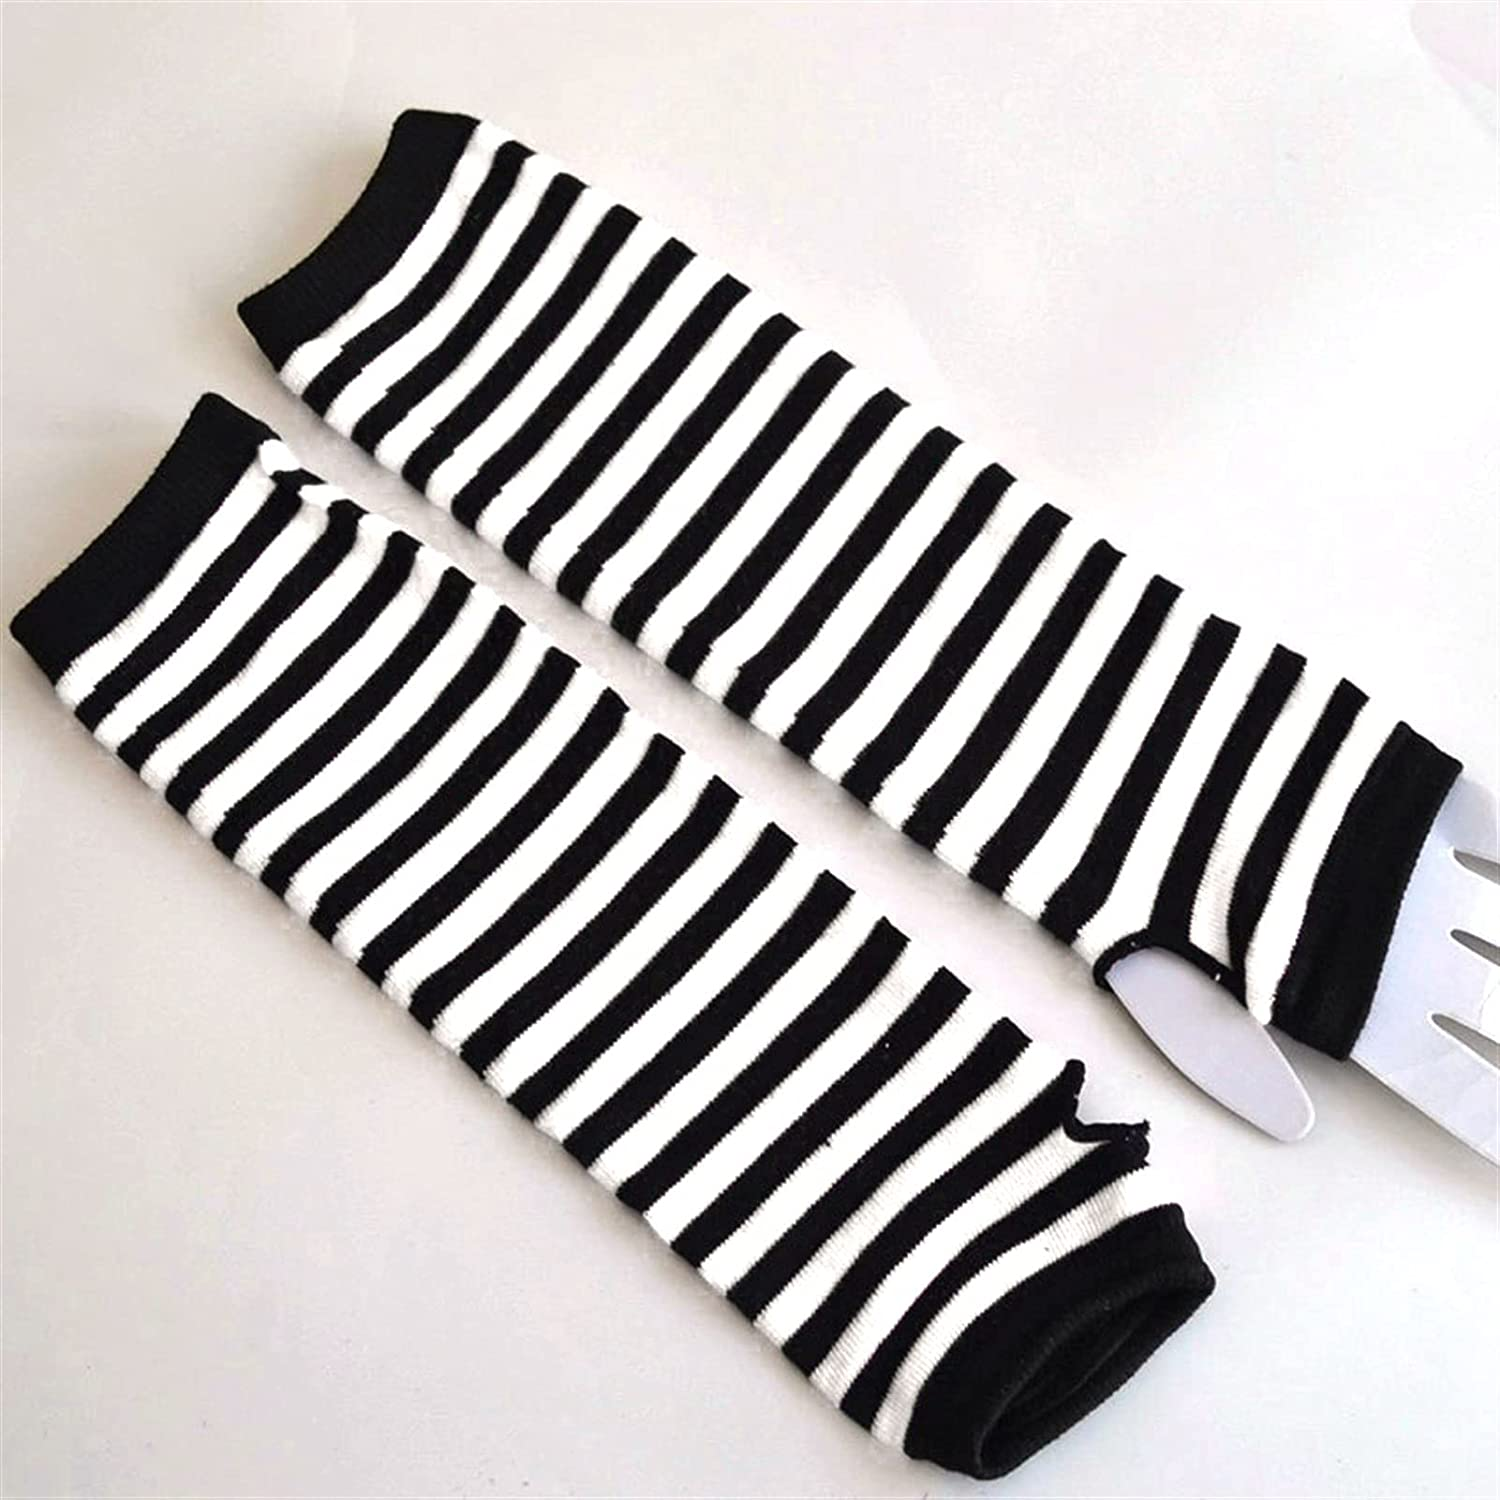 LUBINGT Winter Gloves Fashion Women Lady Striped Elbow Gloves Warmer Knitted Long Fingerless Gloves Elbow Mittens Christmas Accessories Gift (Color : Black White, Gloves Size : One Size)